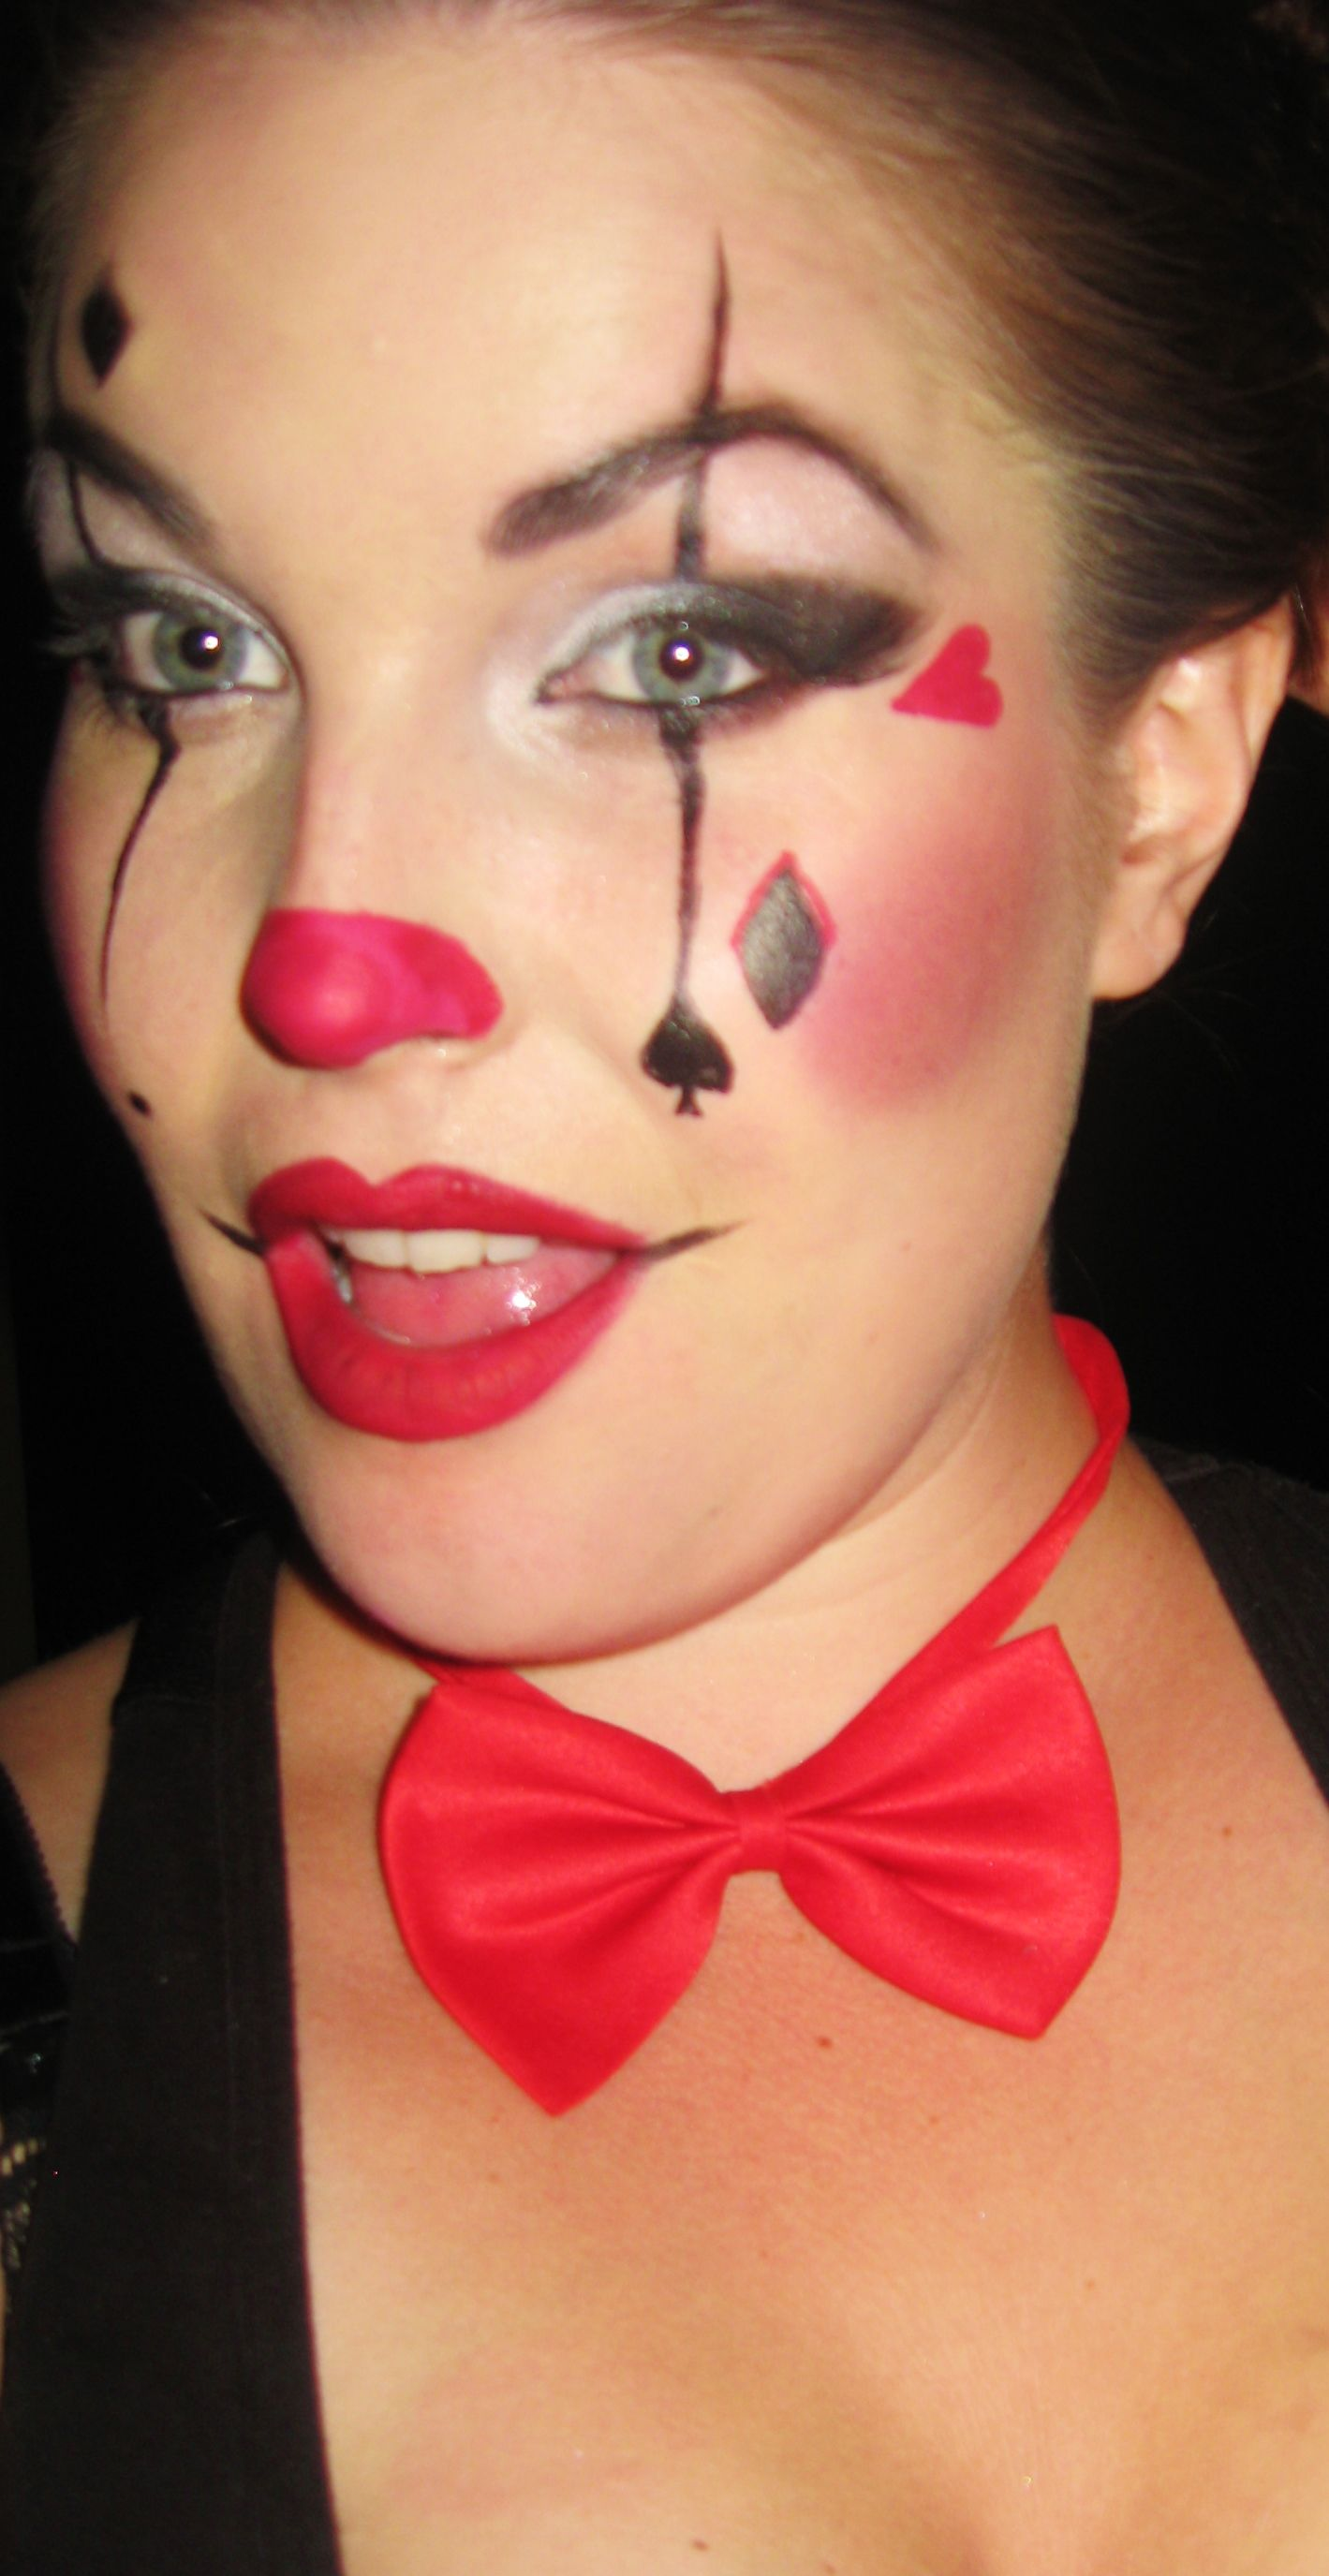 sexy clown makeup fun halloween makeup idea pretty and clowny and fun wwwfacebook - Fun Makeup Ideas For Halloween